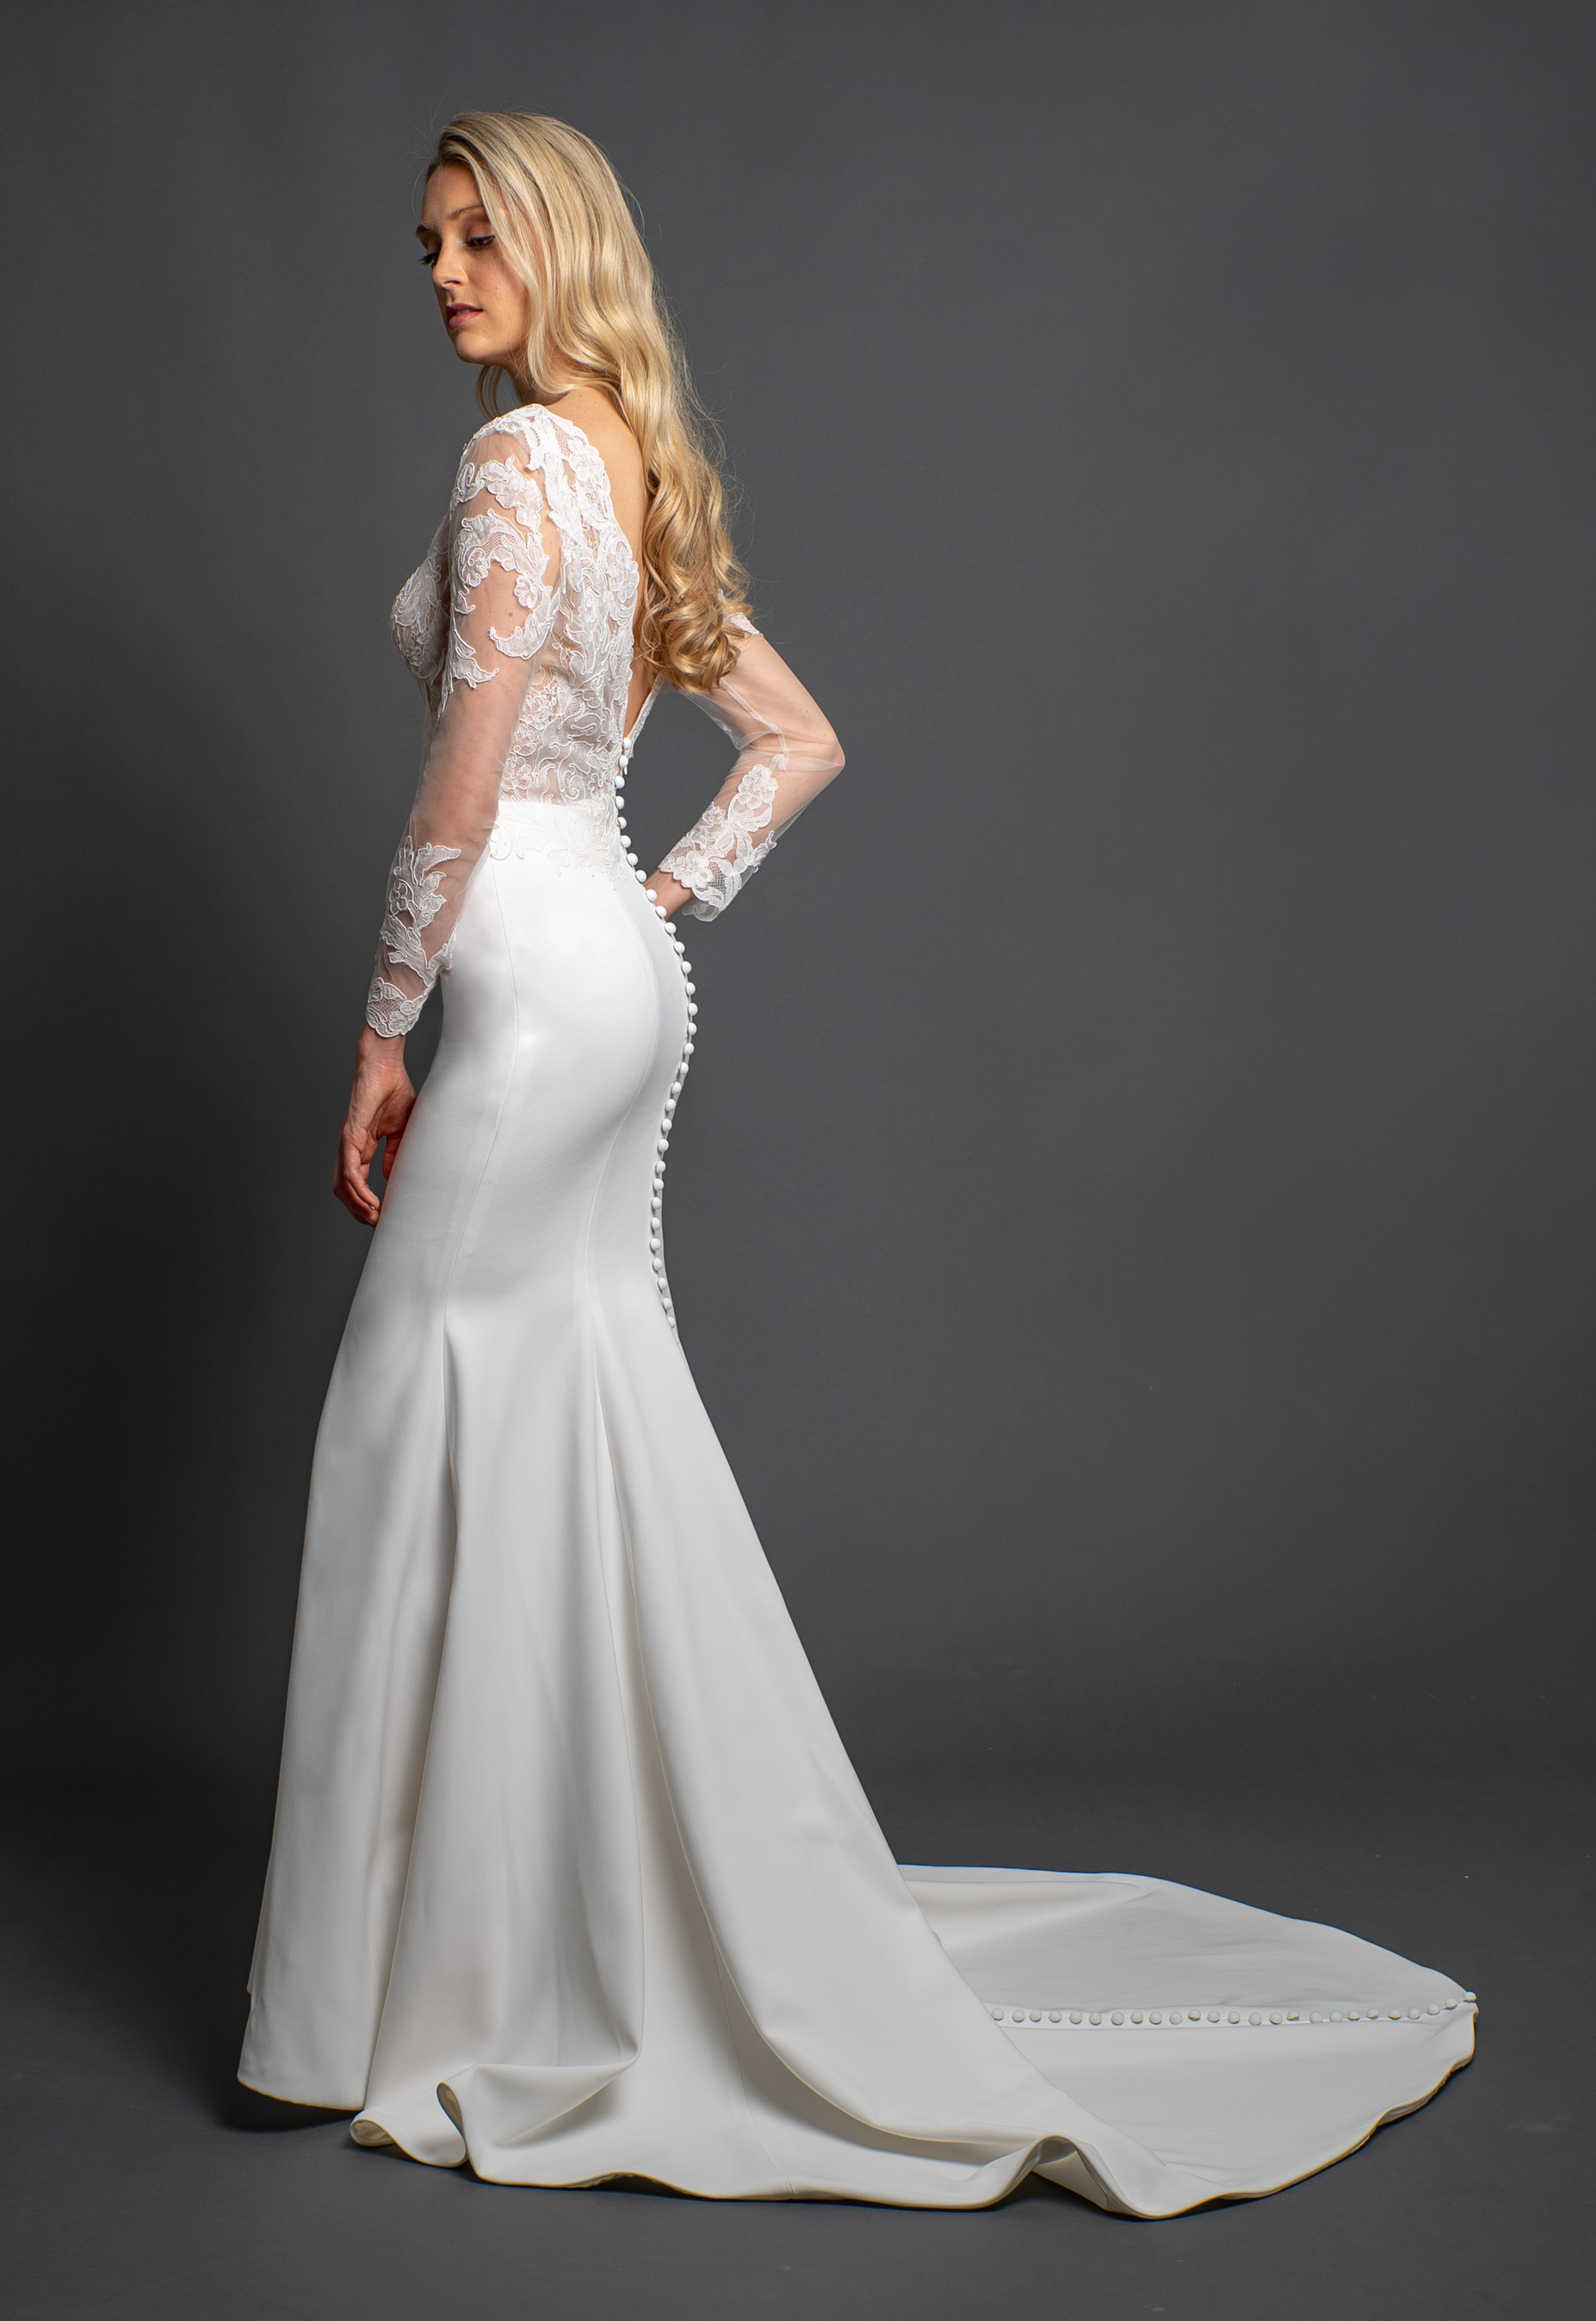 Sleeveless V-neckline Fitted Lace Wedding Dress by Modern Trousseau. Made in the USA by Modern Trousseau.